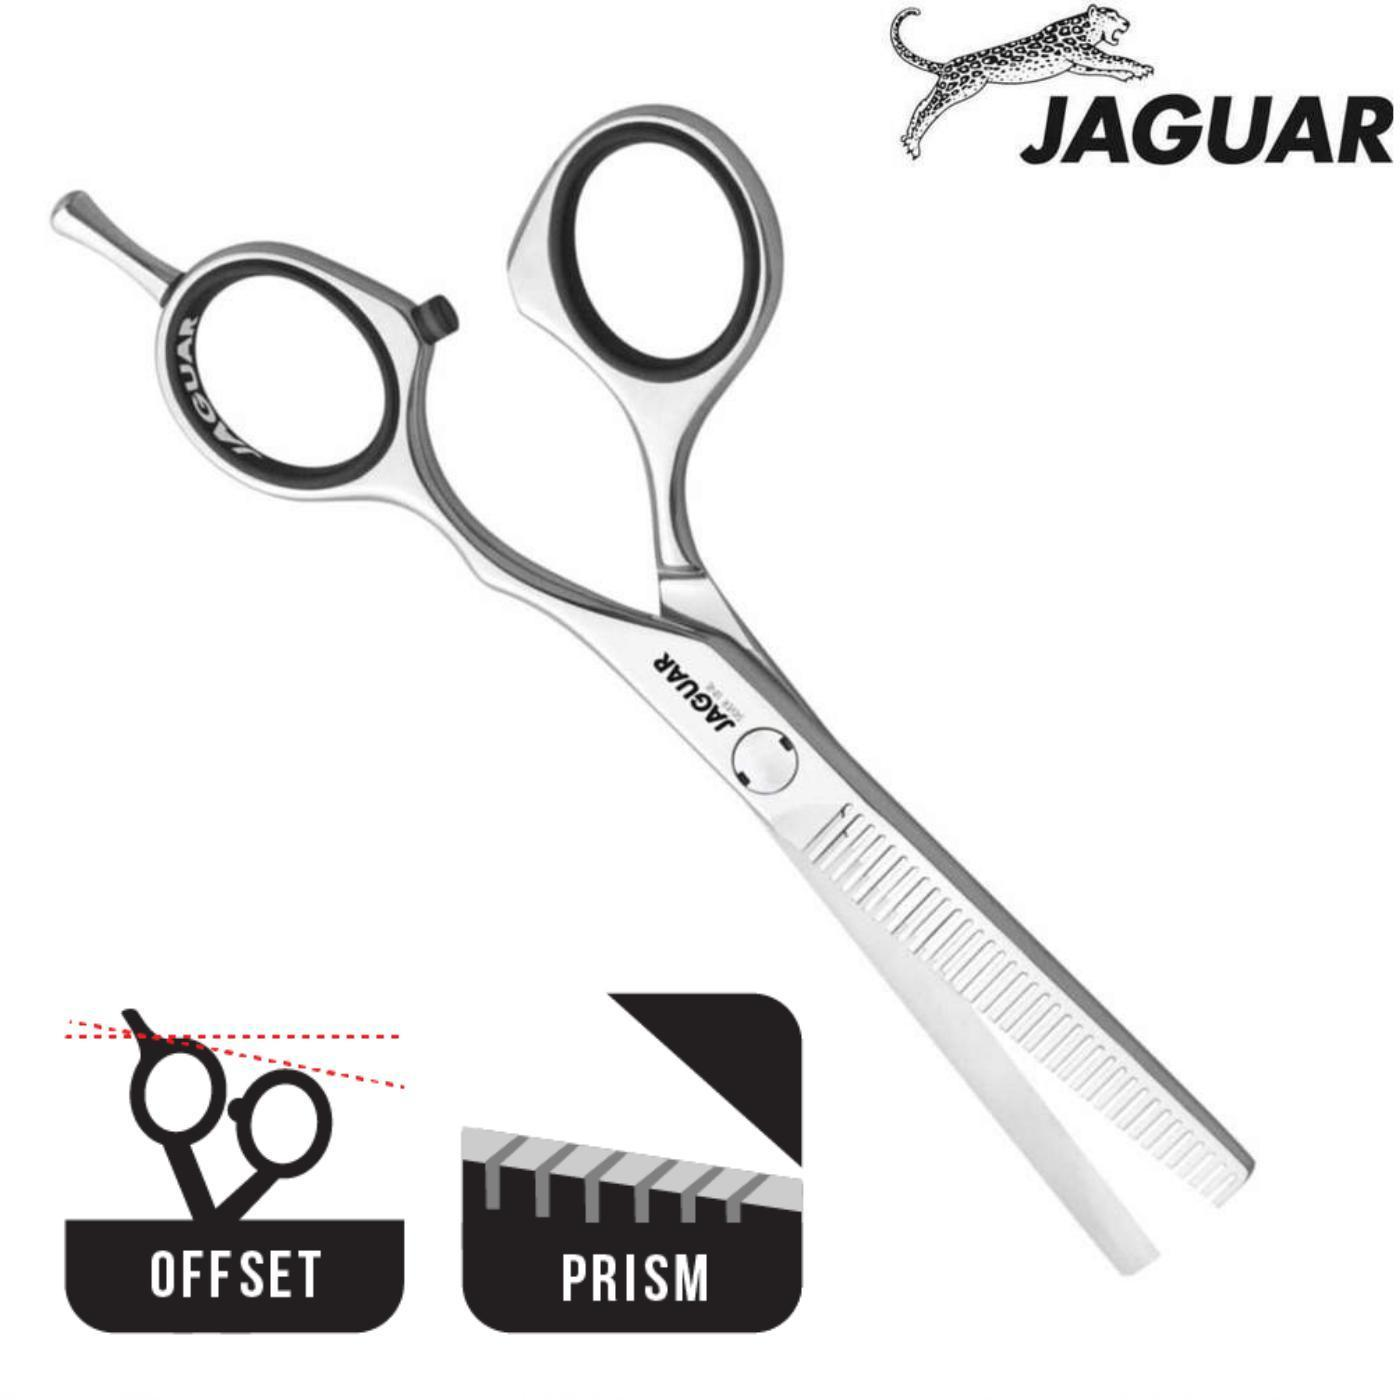 Jaguar Silver Line CM36 Hair Thinning Scissors - Japan Scissors